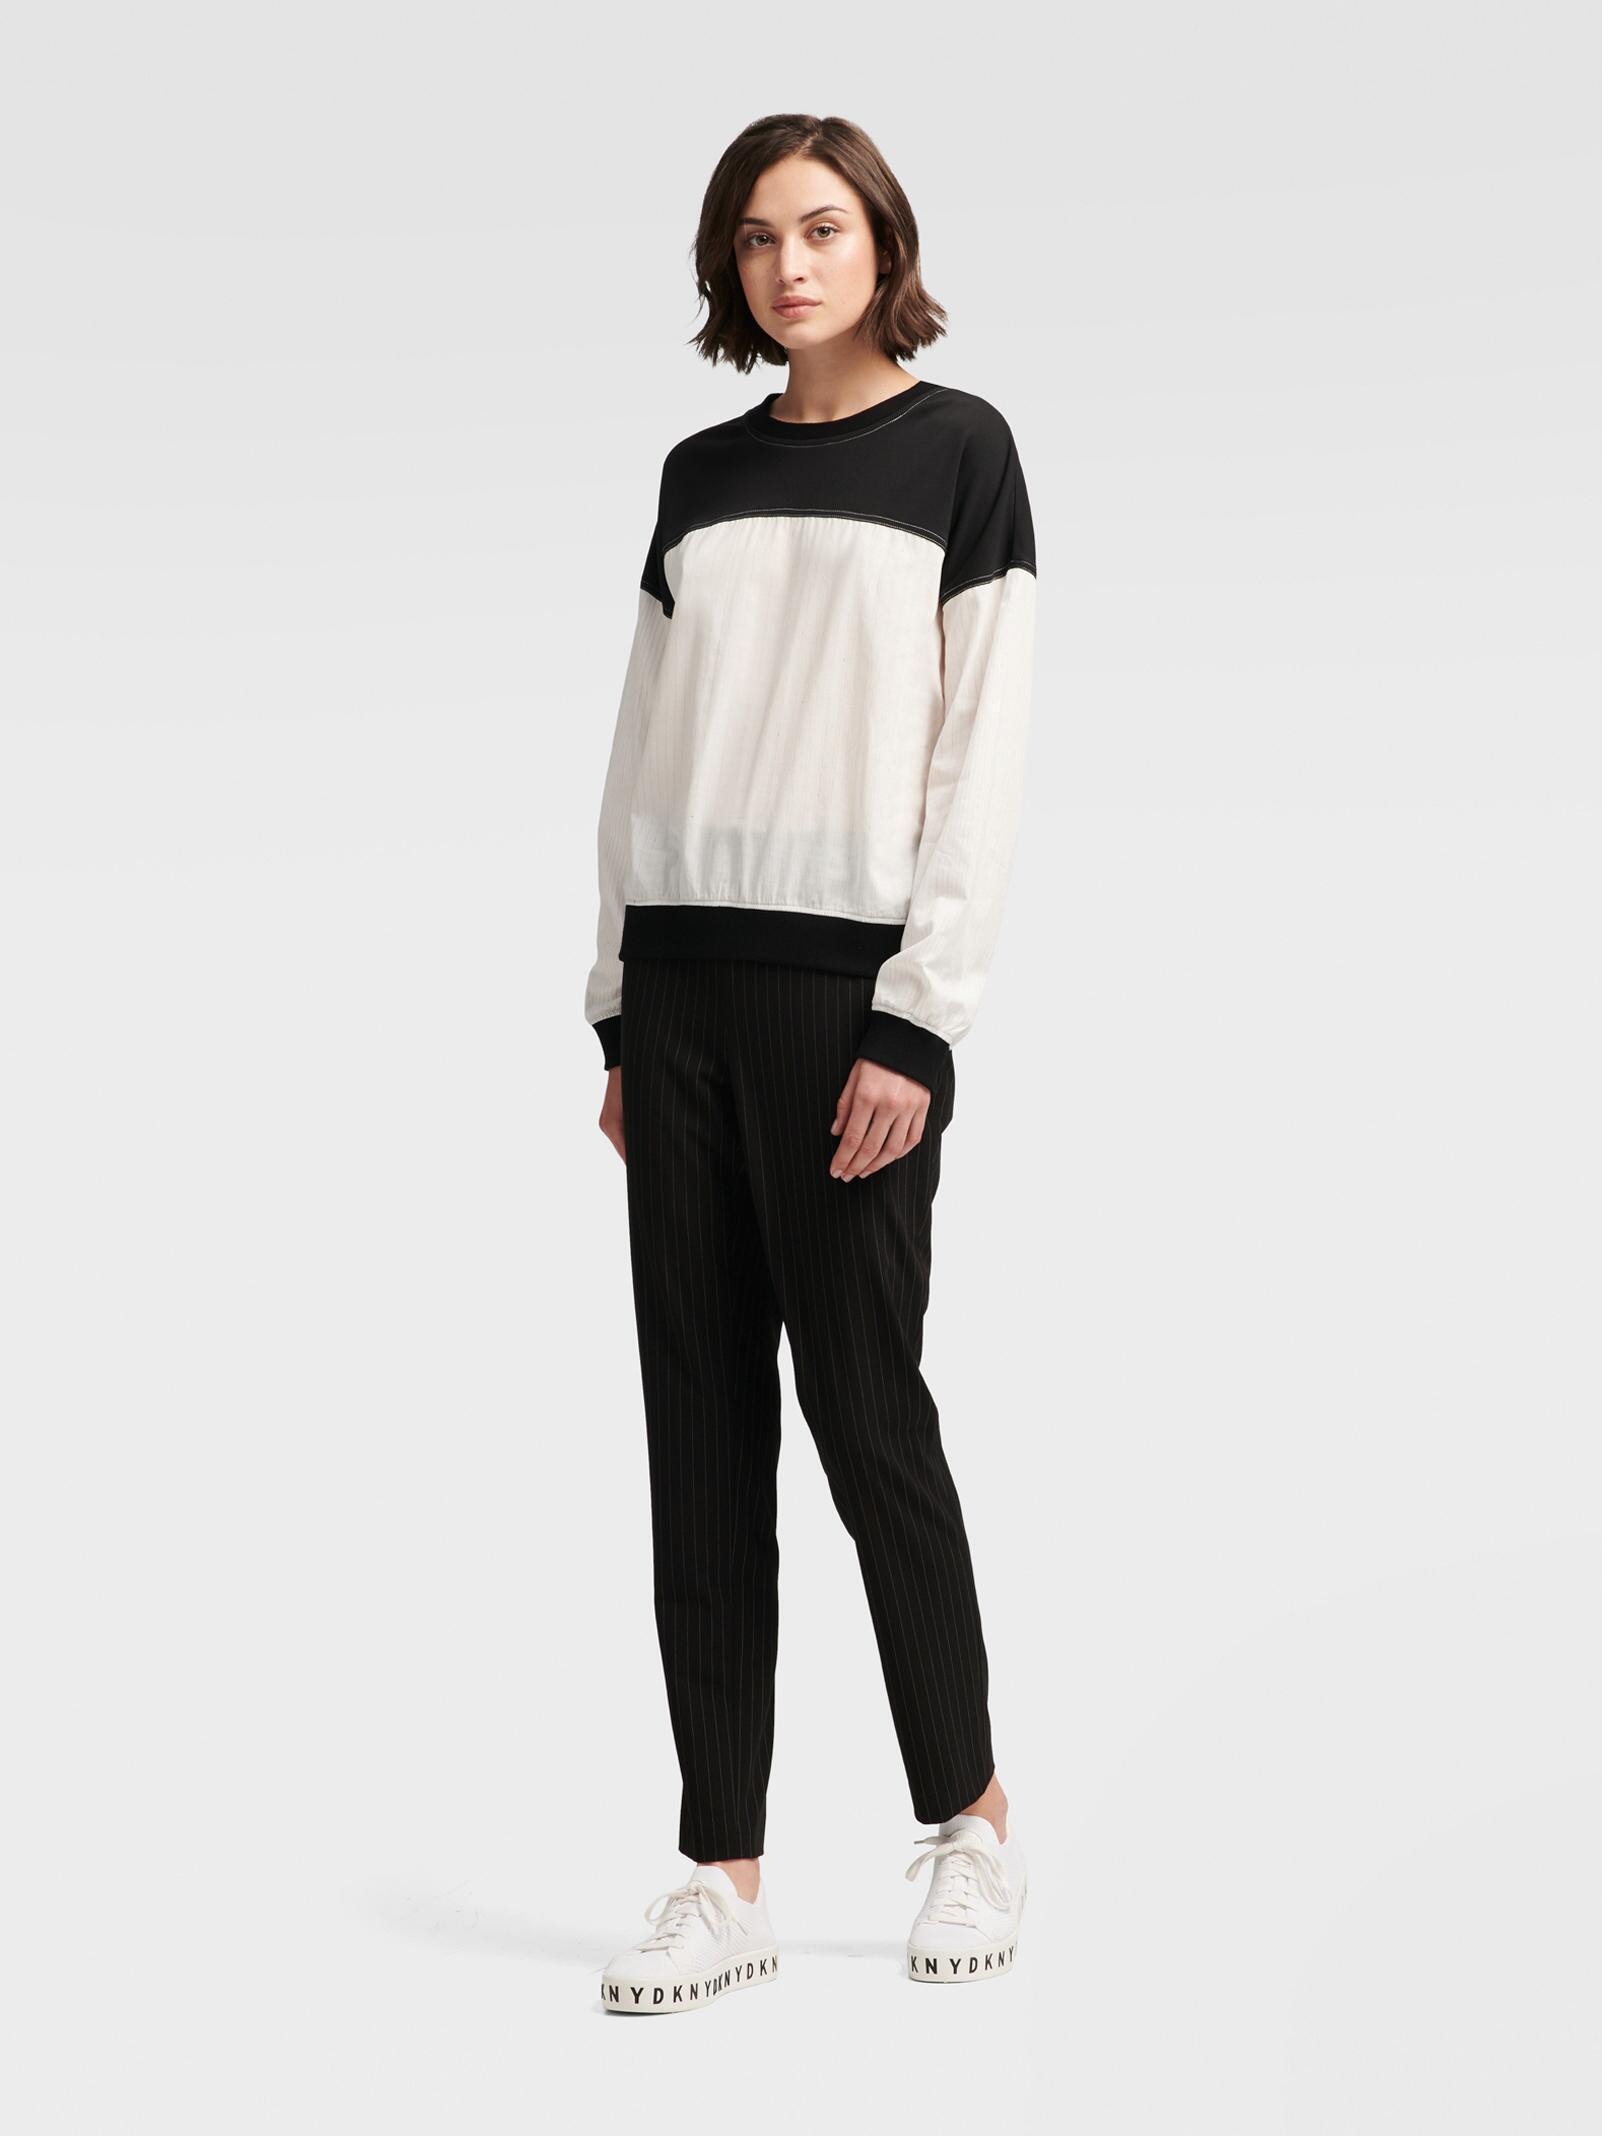 617eaabf03d Lyst - Dkny Mixed-media Colorblock Top in White